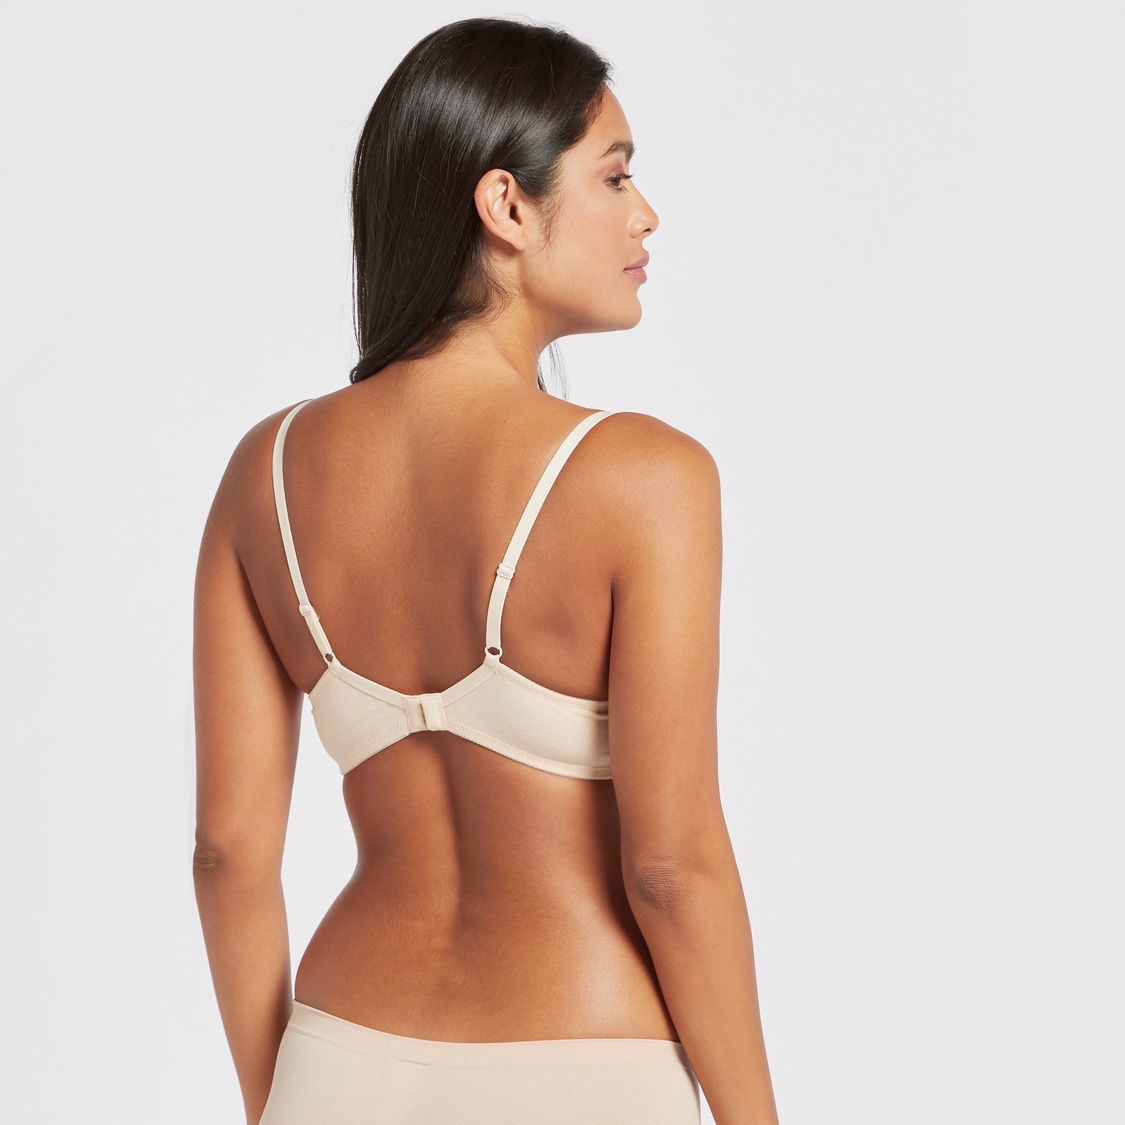 Set of 2 - Lace Detail Bra with Hook and Eye Closure